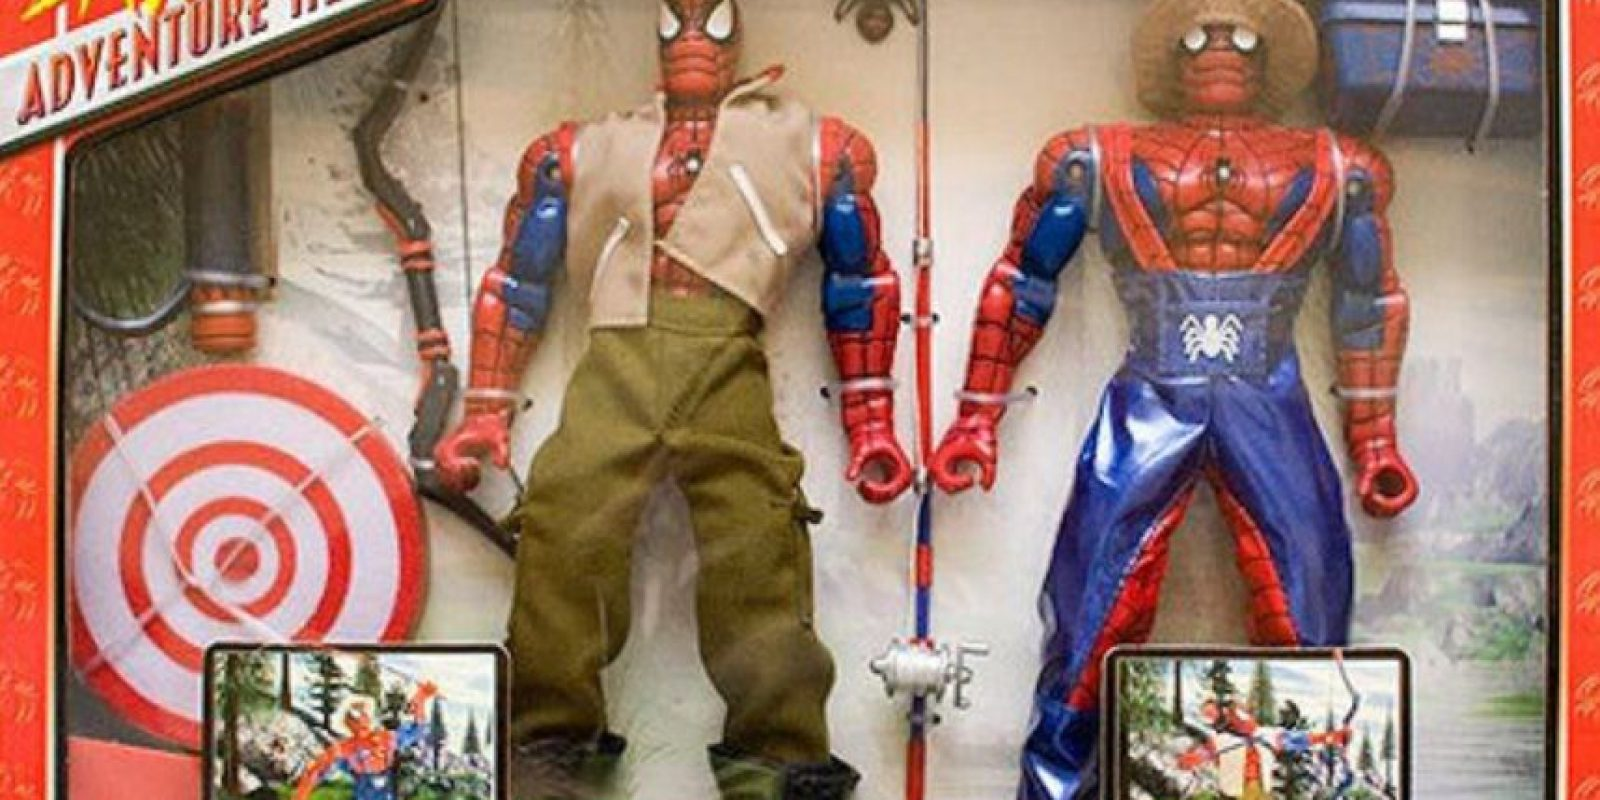 Spiderman en la granja. Foto: vía Tumblr/ Bootleg Action Figures